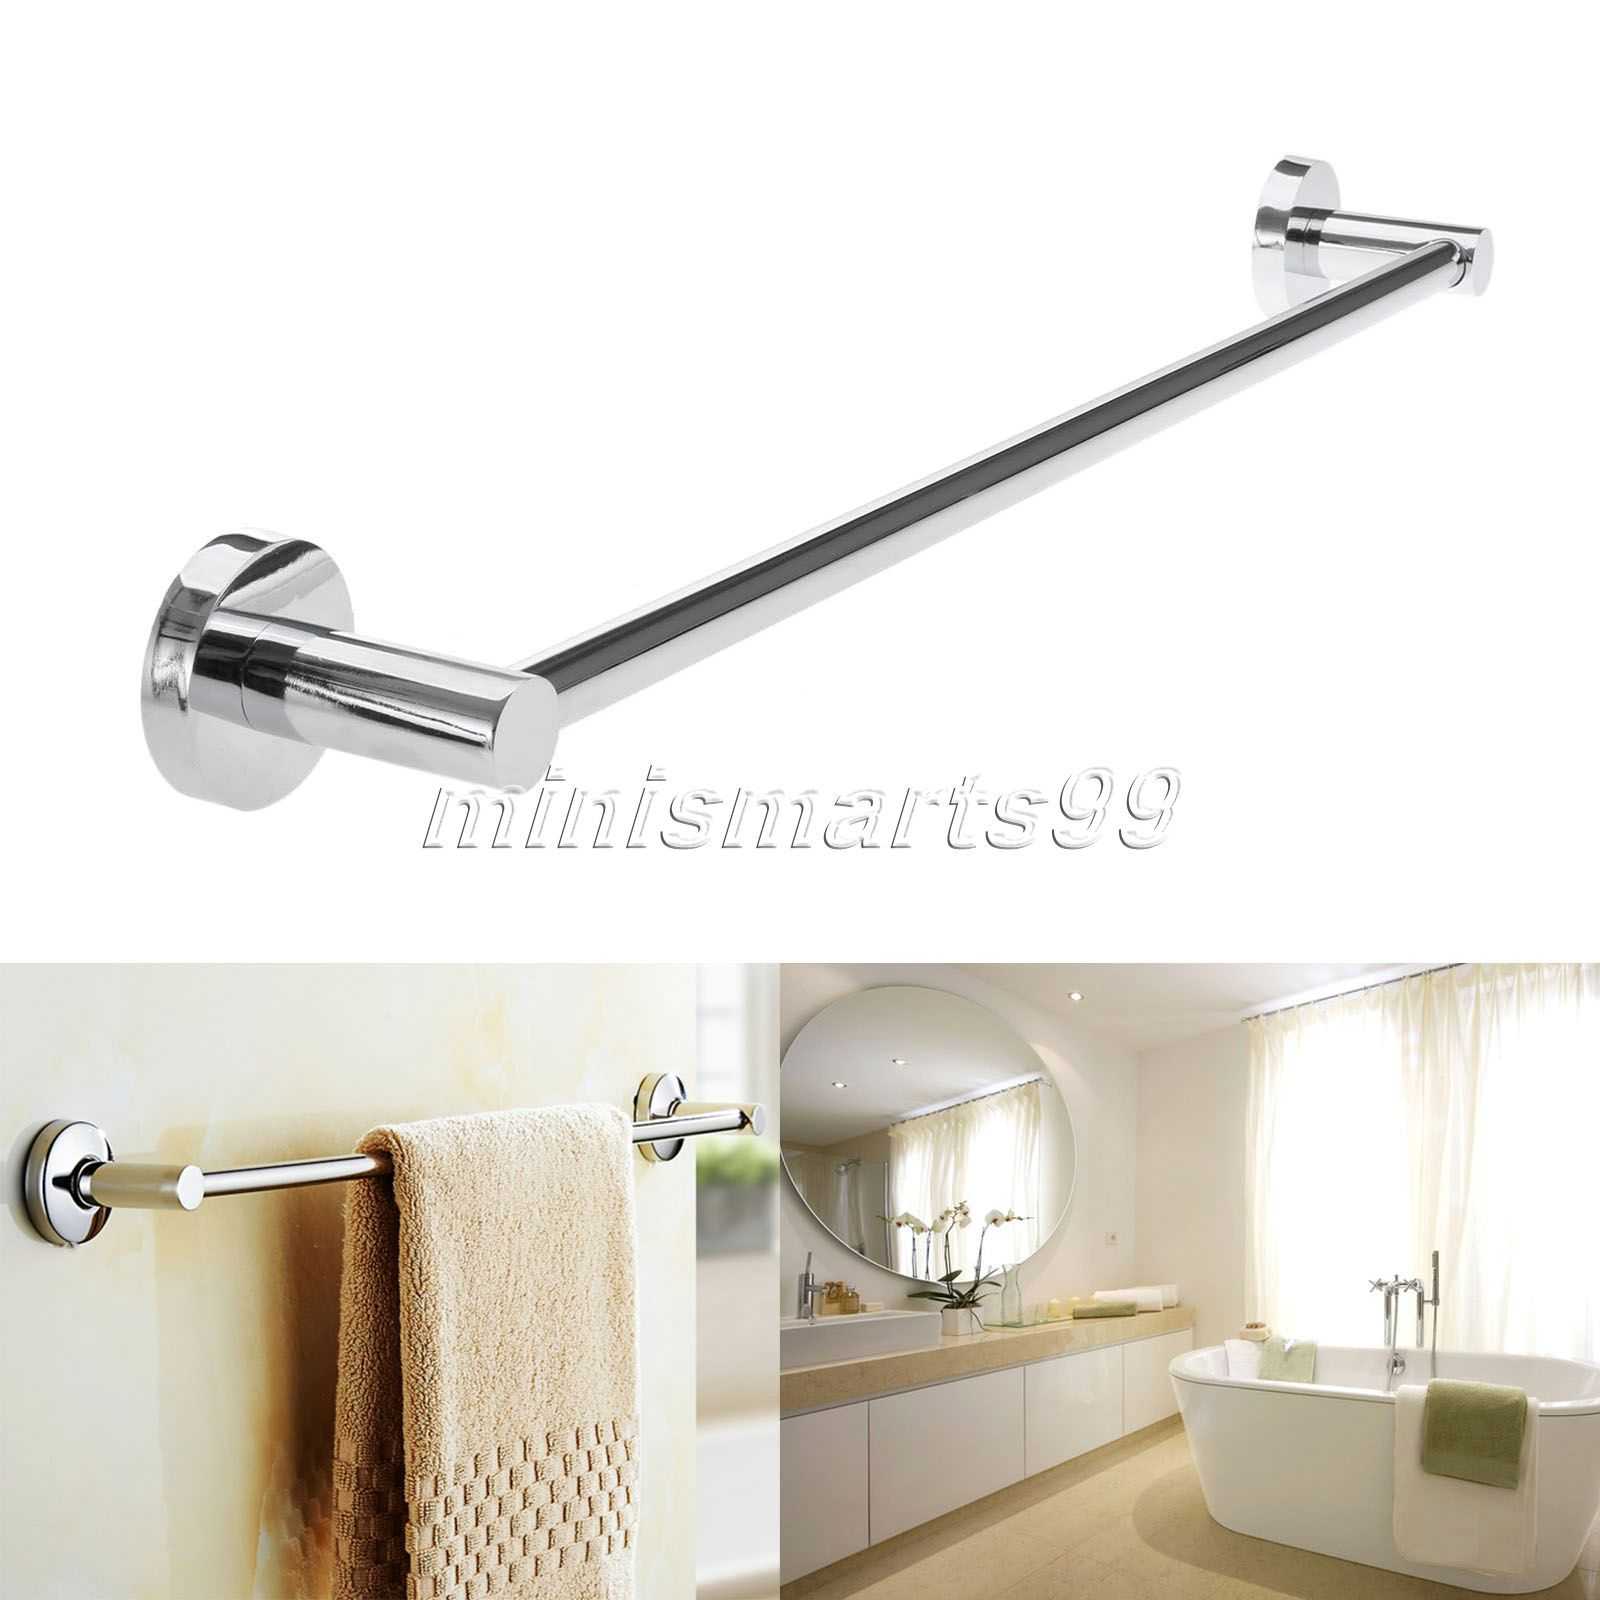 60cm Steel Towel Rack Holder Wall Mounted Bathroom Holders Single Pole Bars Bath